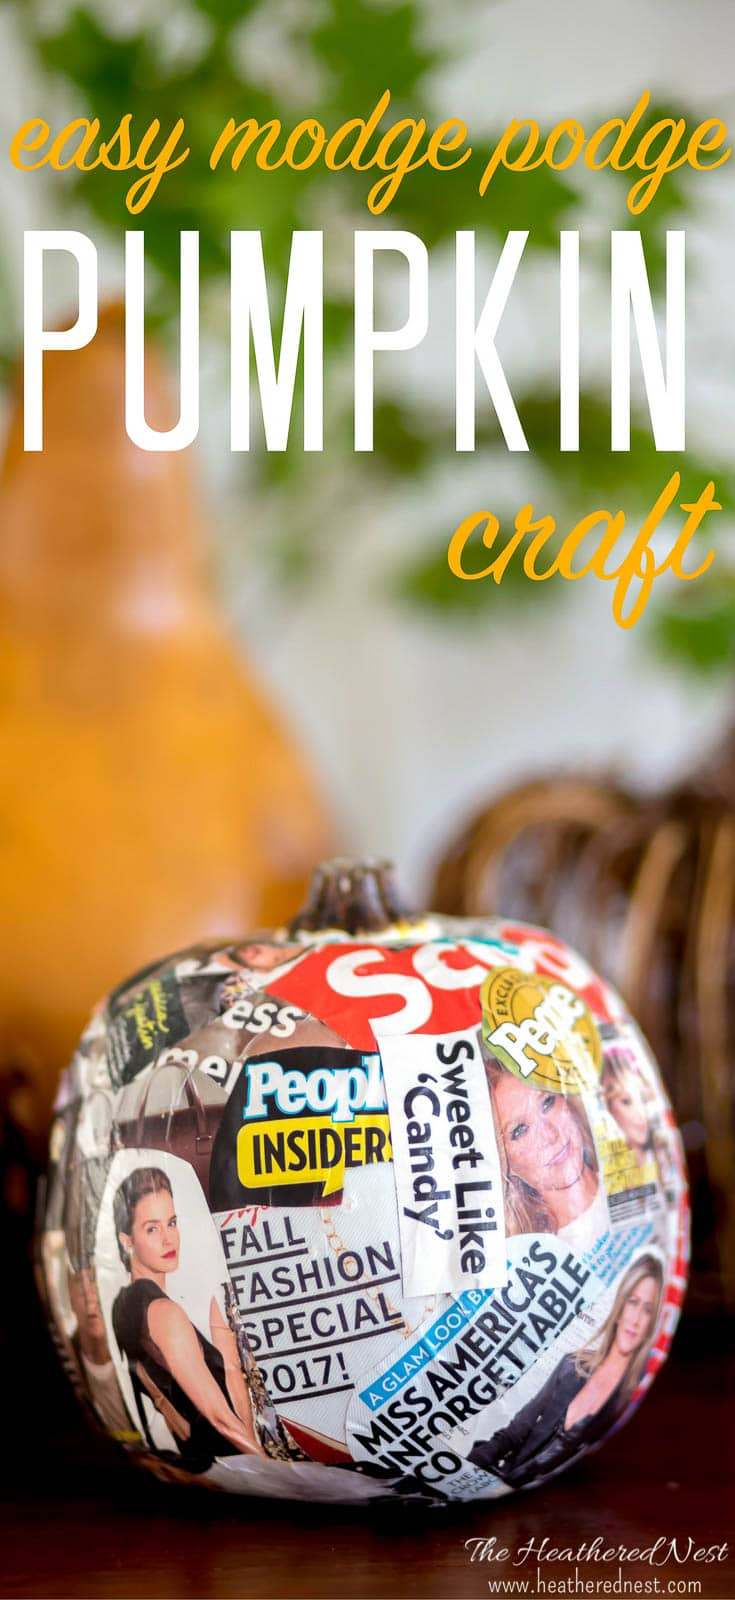 Ha! Not your every day DIY pumpkin craft here! What a fun #fall #pumpkin #craft idea from Modge Podge and magazines? #nocarvepumpkinideas #modgepodgepumpkincraft #pumpkincraftideas #easyfalldecorideas #easypumpkincrafts #easypumpkincraft #fallmodgepodgecrafts #funkinideas